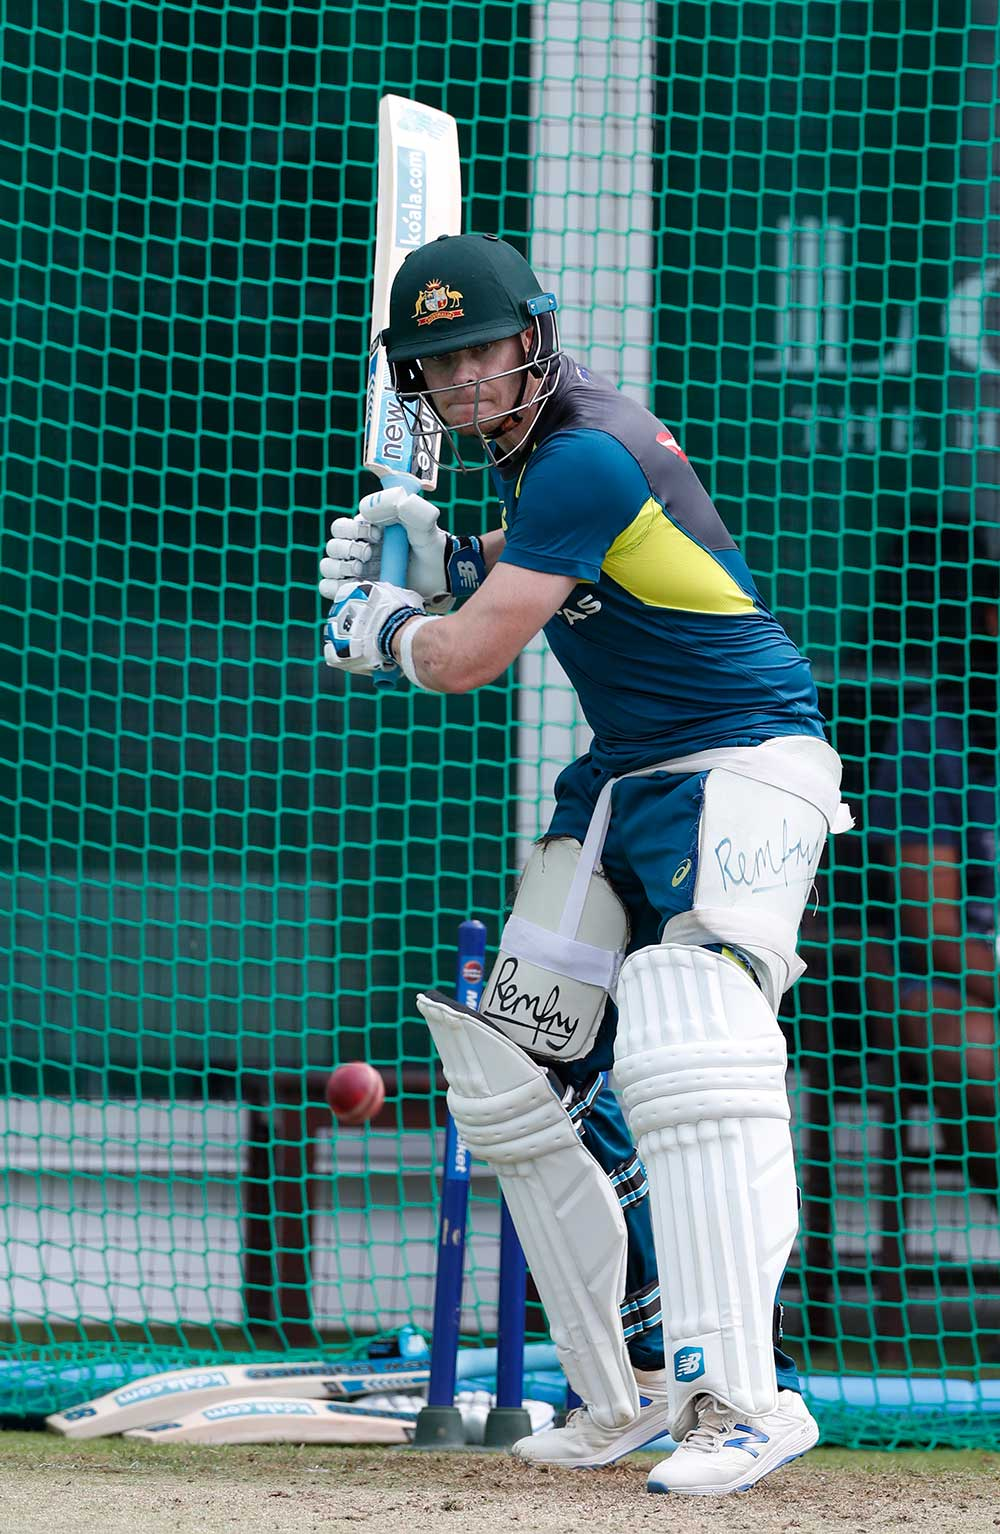 Smith at work in the Lord's nets // Getty